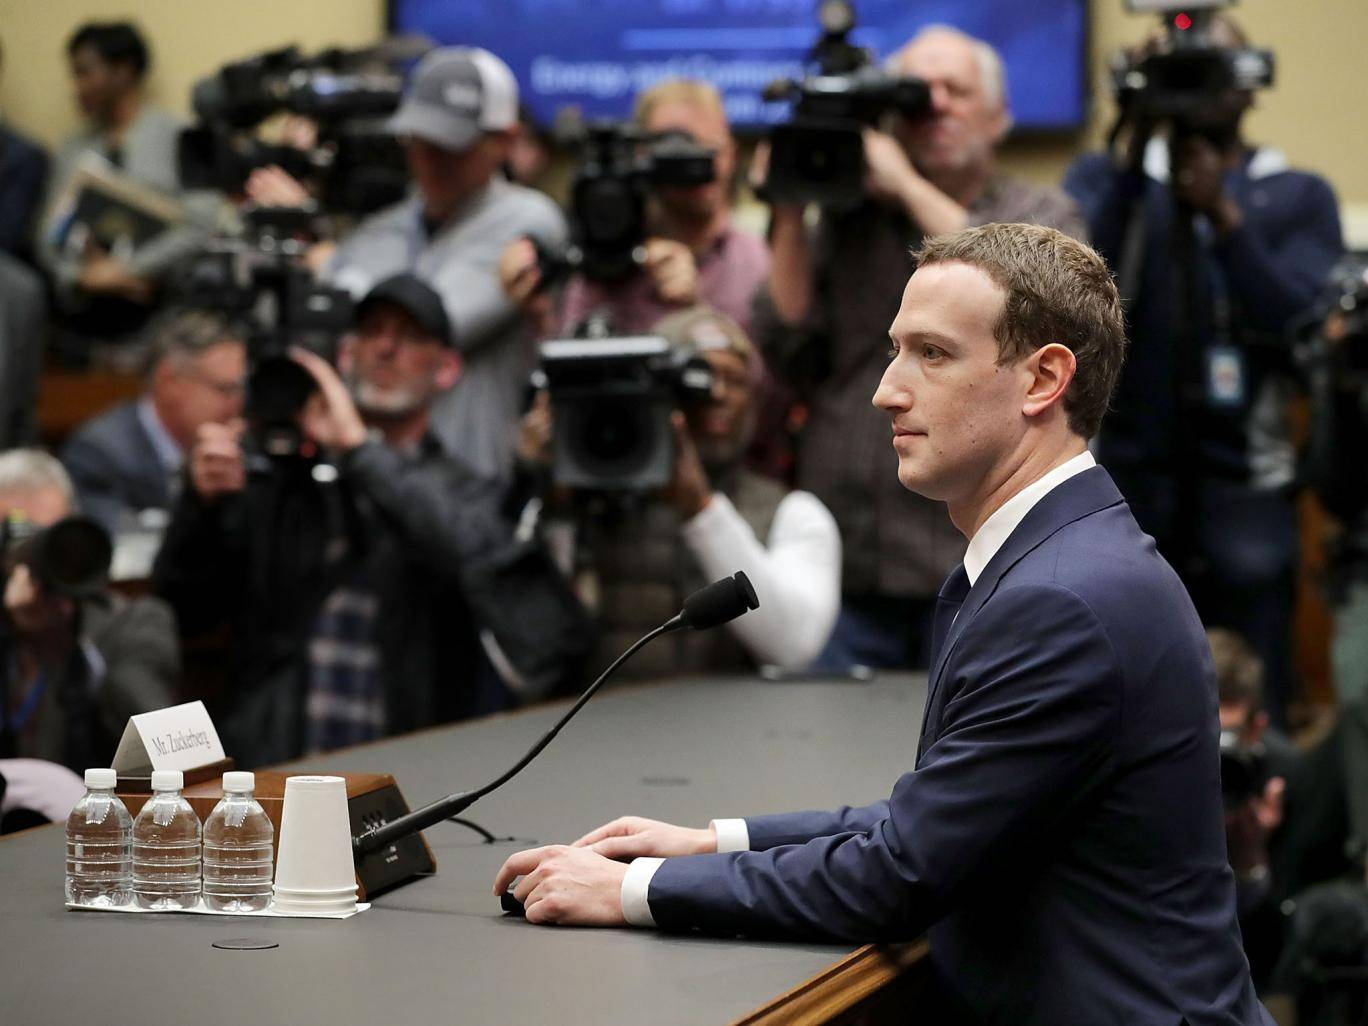 Mark Zuckerberg to face public grilling at European Parliament after rejecting Commons invitation